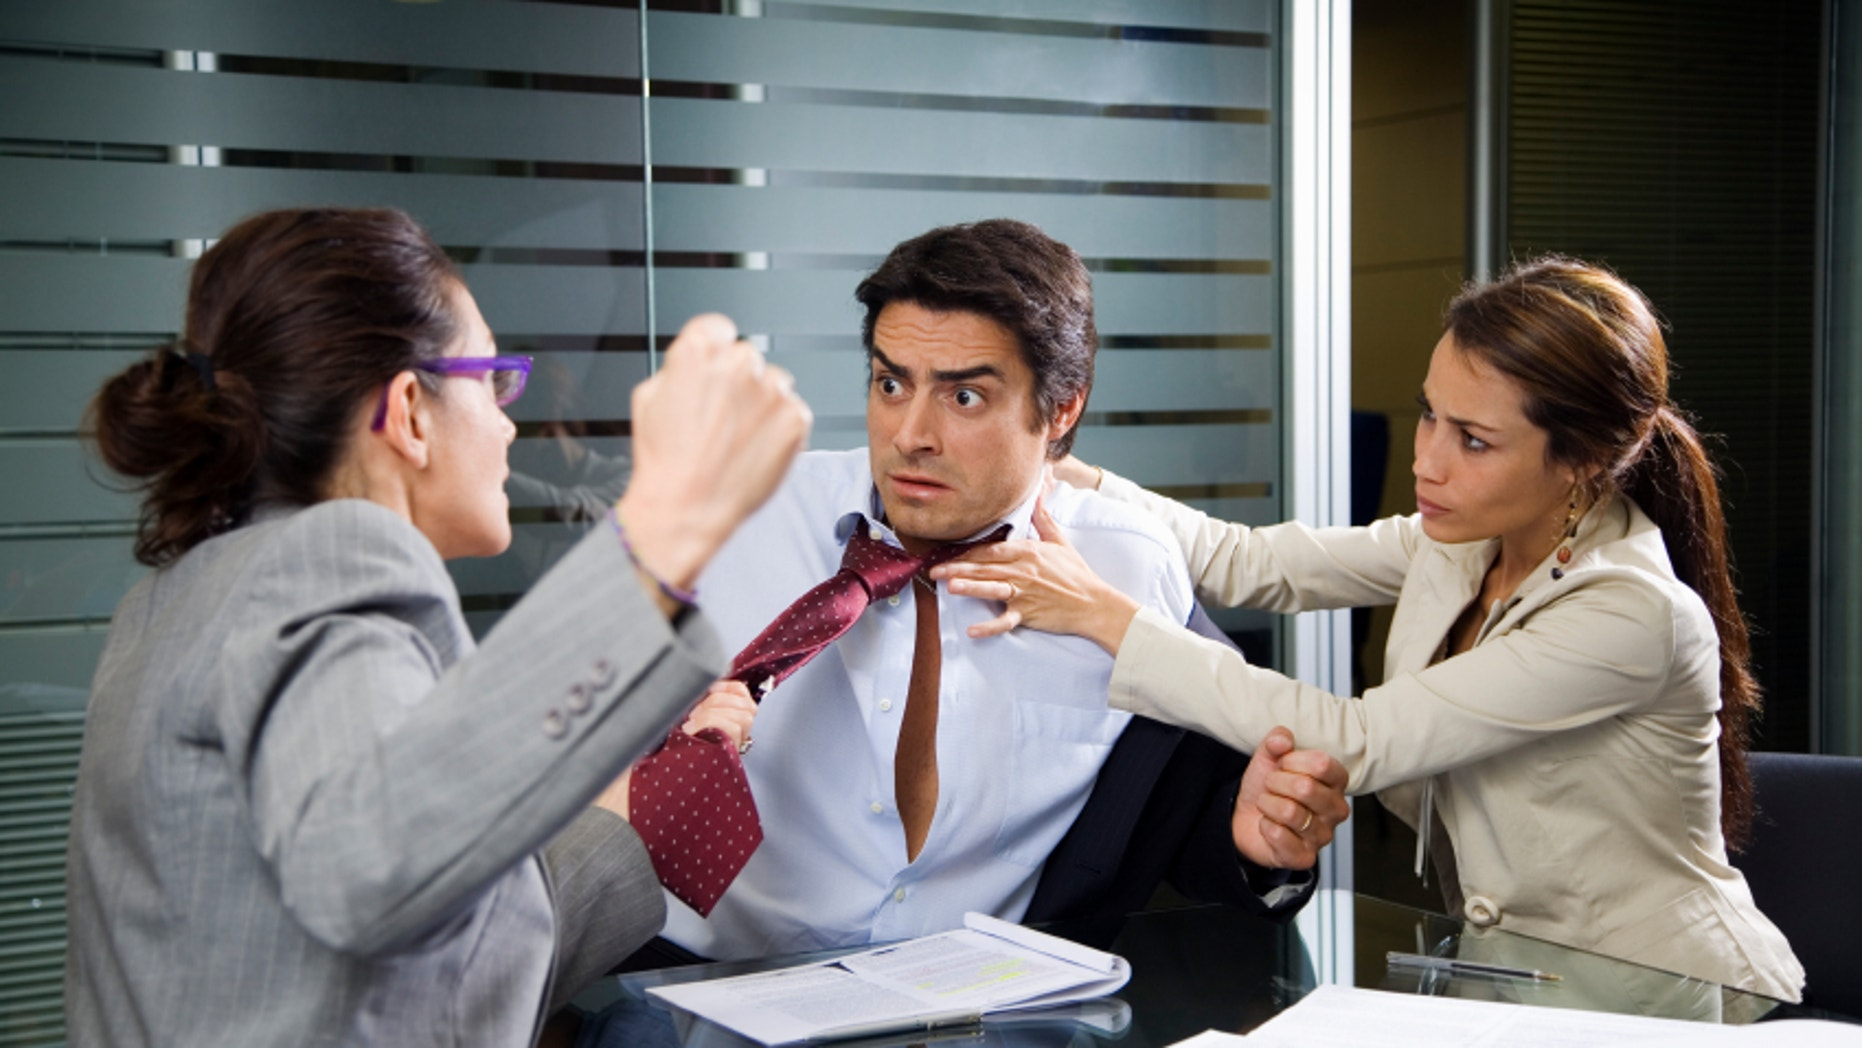 Office life: business team having a fight